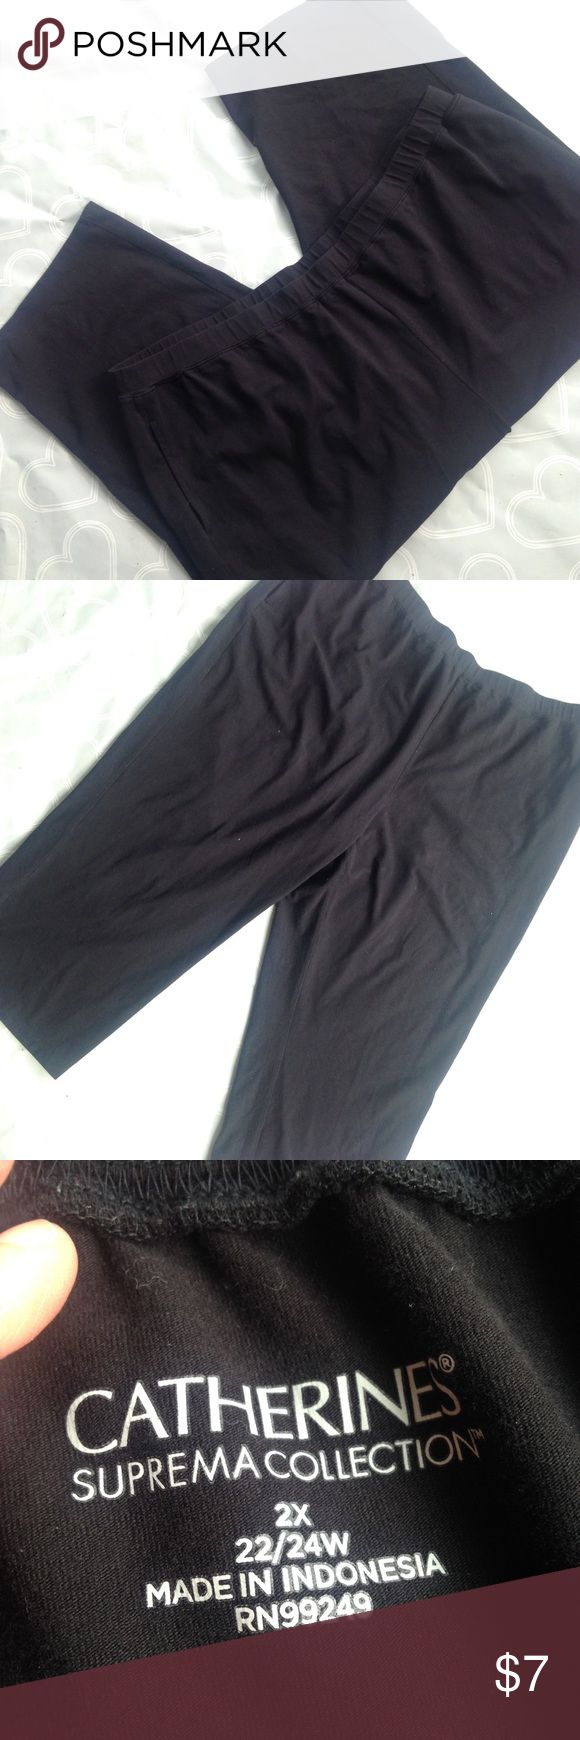 Women's capri pants size 24W EUC-- Women's capri pants size 24w- perfect for summer and comfort. Brand- Catherines Catherines Pants Capris